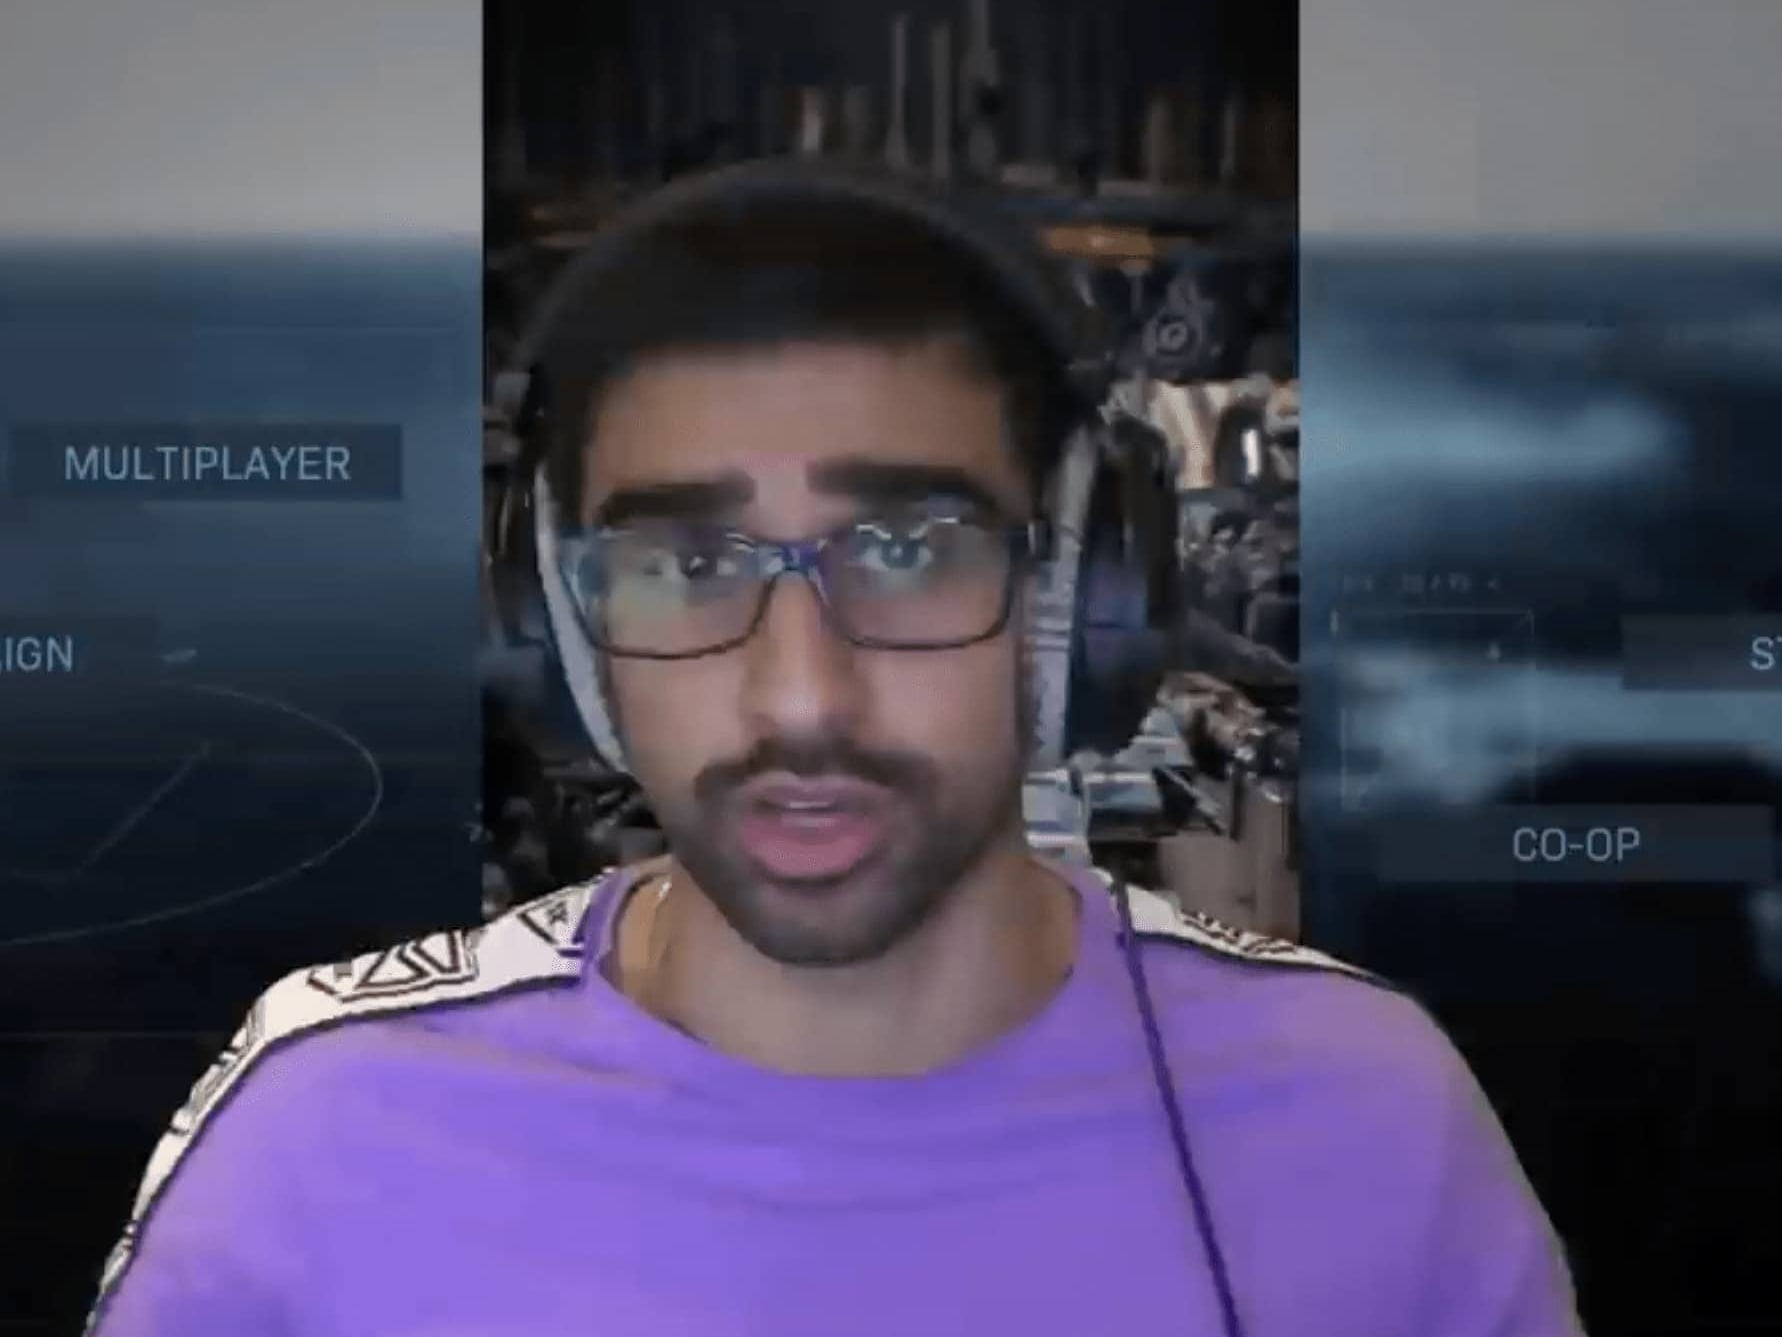 Vikkstar supporting Rise Above The Disorder.